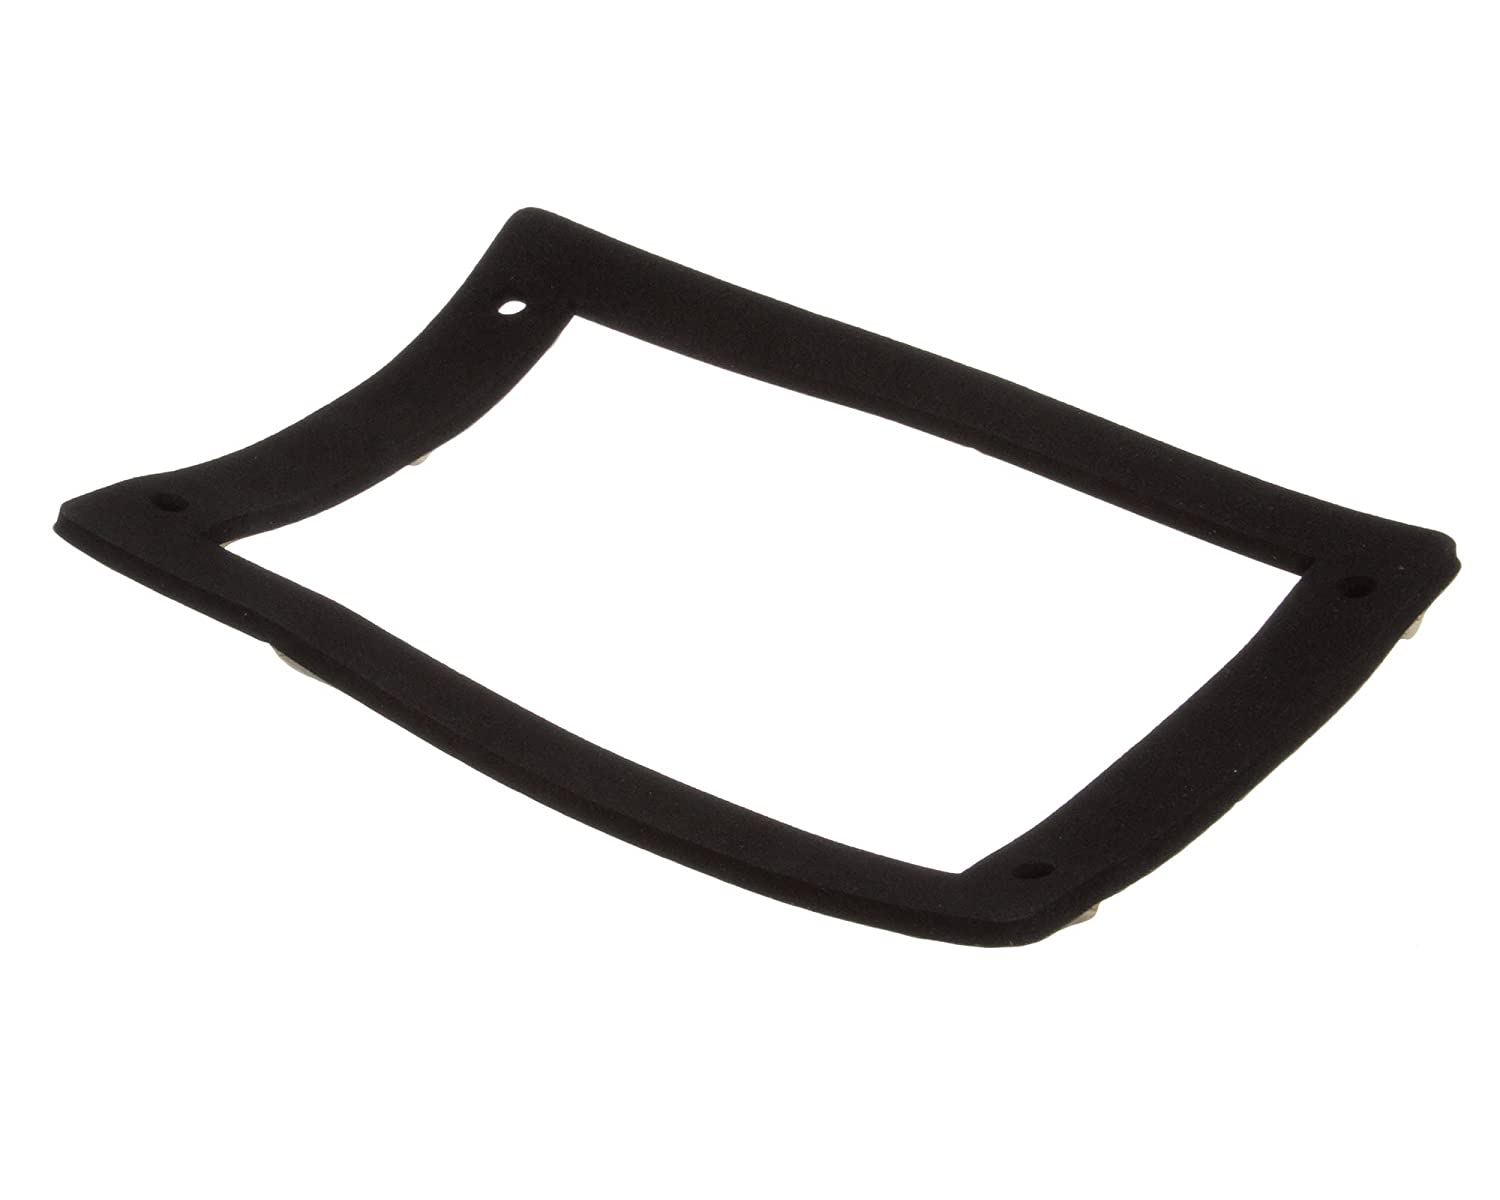 Power Soak Systems 24849 Inc Gasket Heater Cover Max Imager